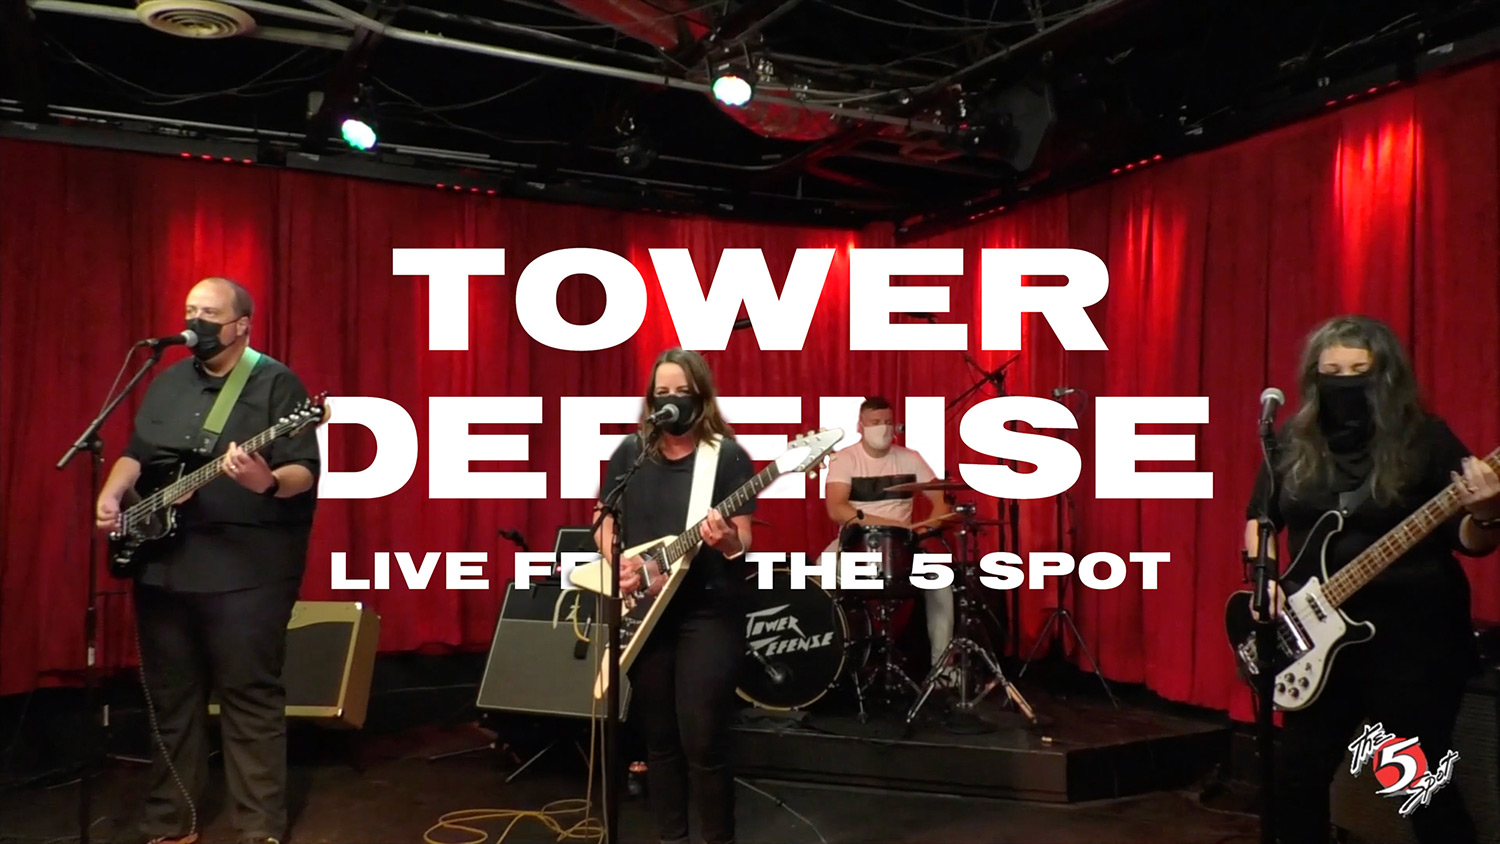 Tower Defense -- Live from The 5 Spot